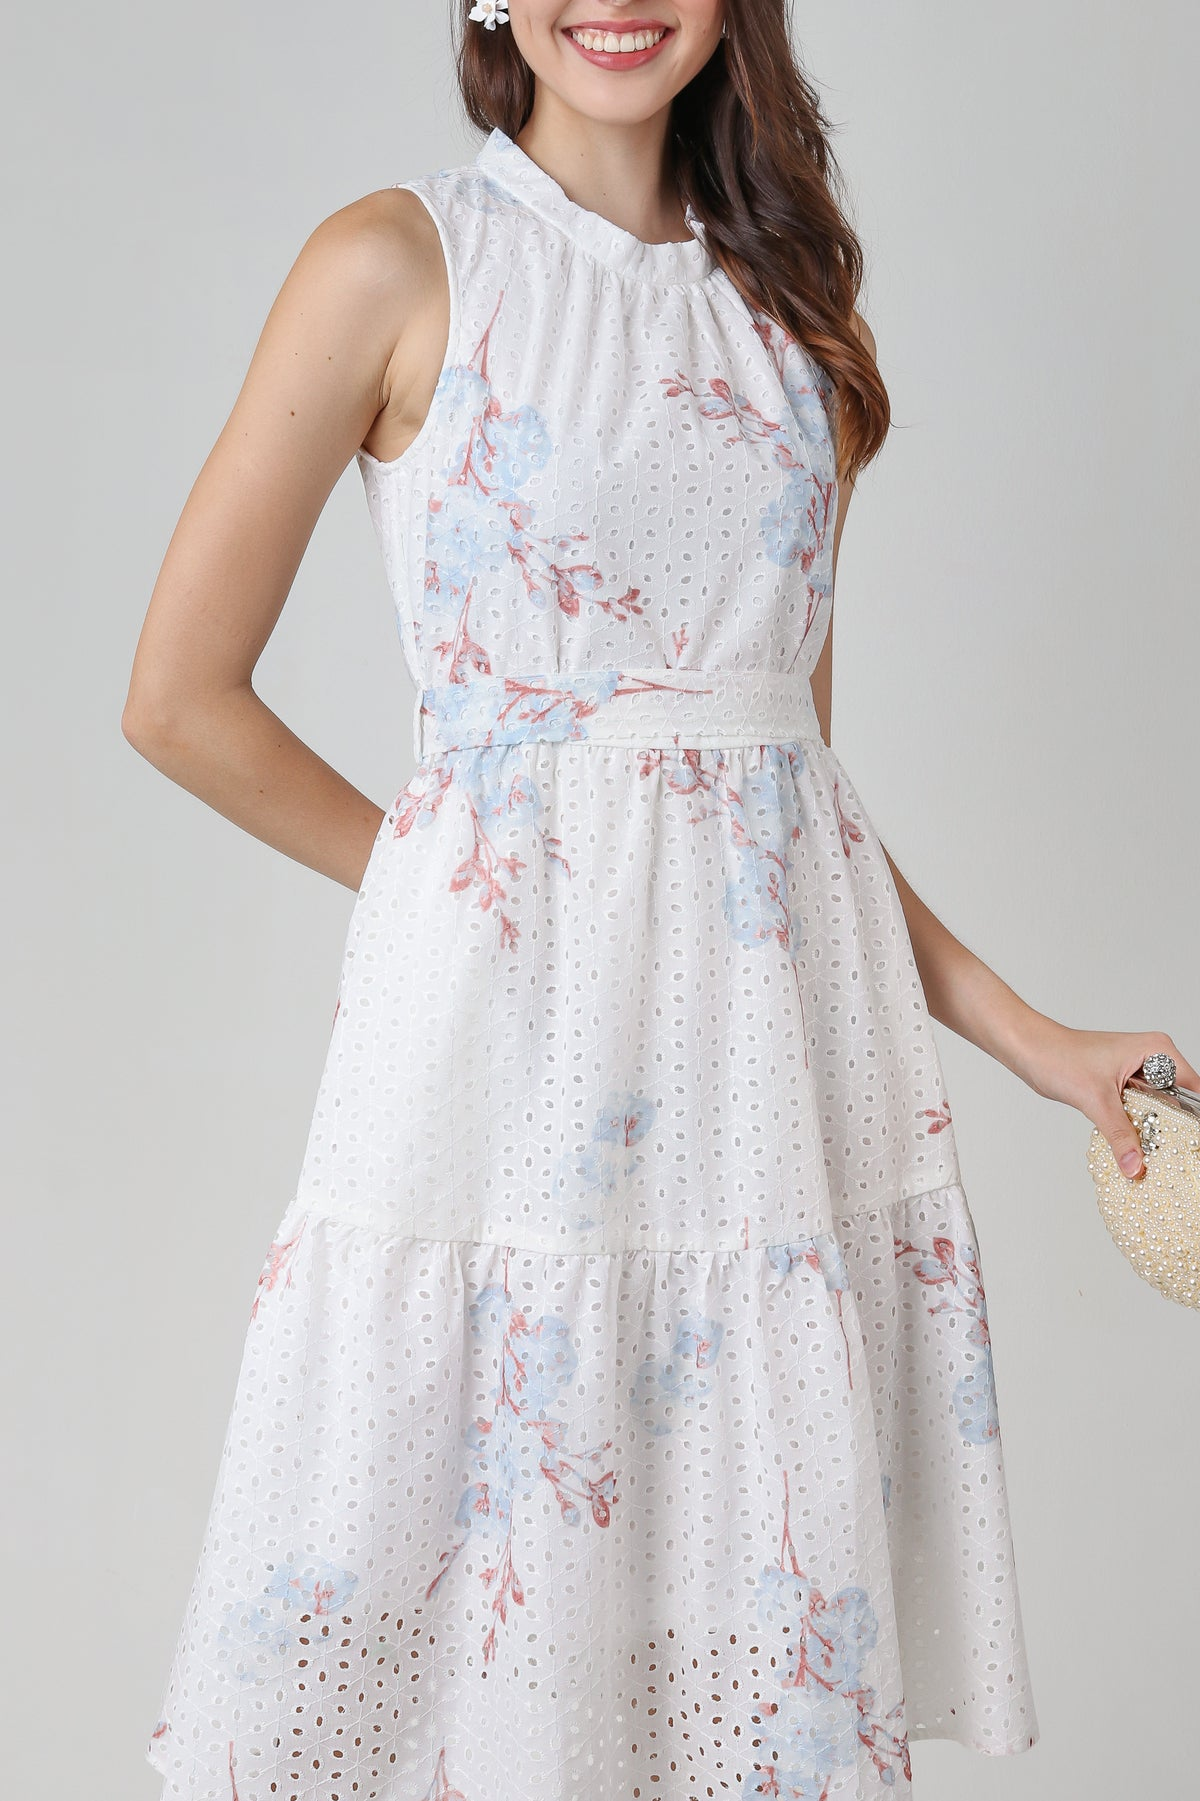 Porcelain Beauty Eyelet Dress in Plum